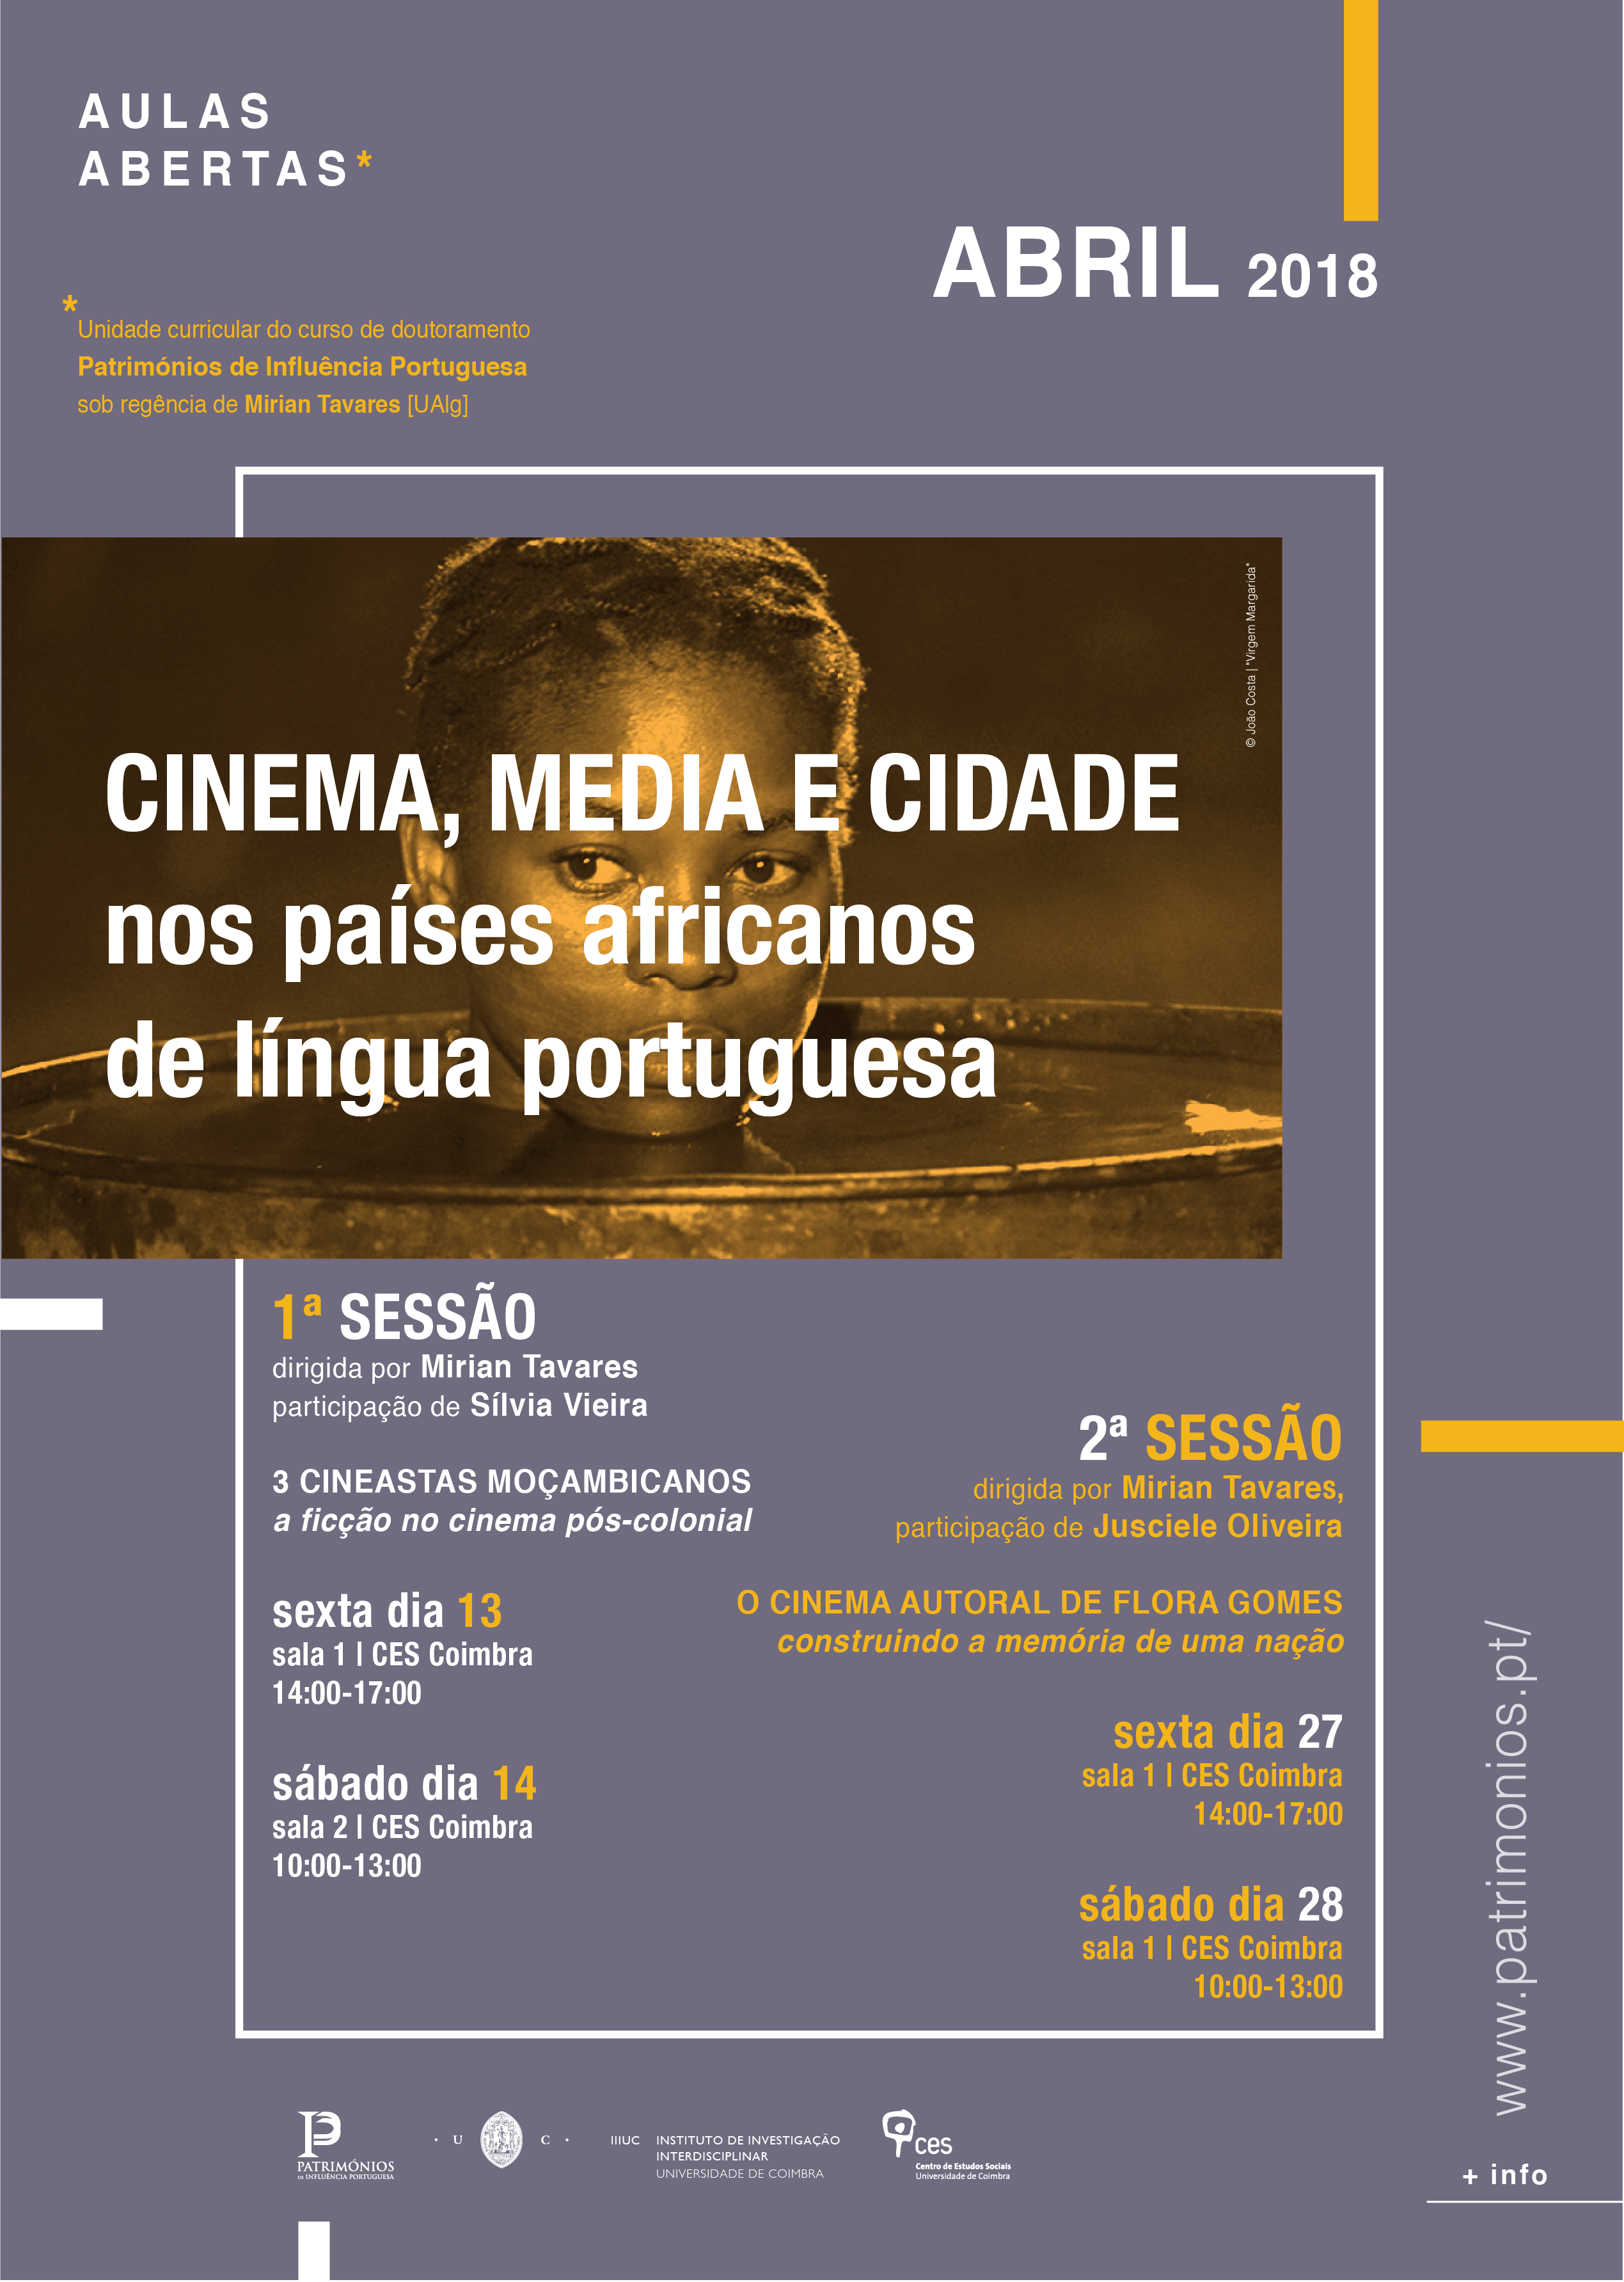 3 Mozambican filmmakers - fiction in postcolonial cinema<br />